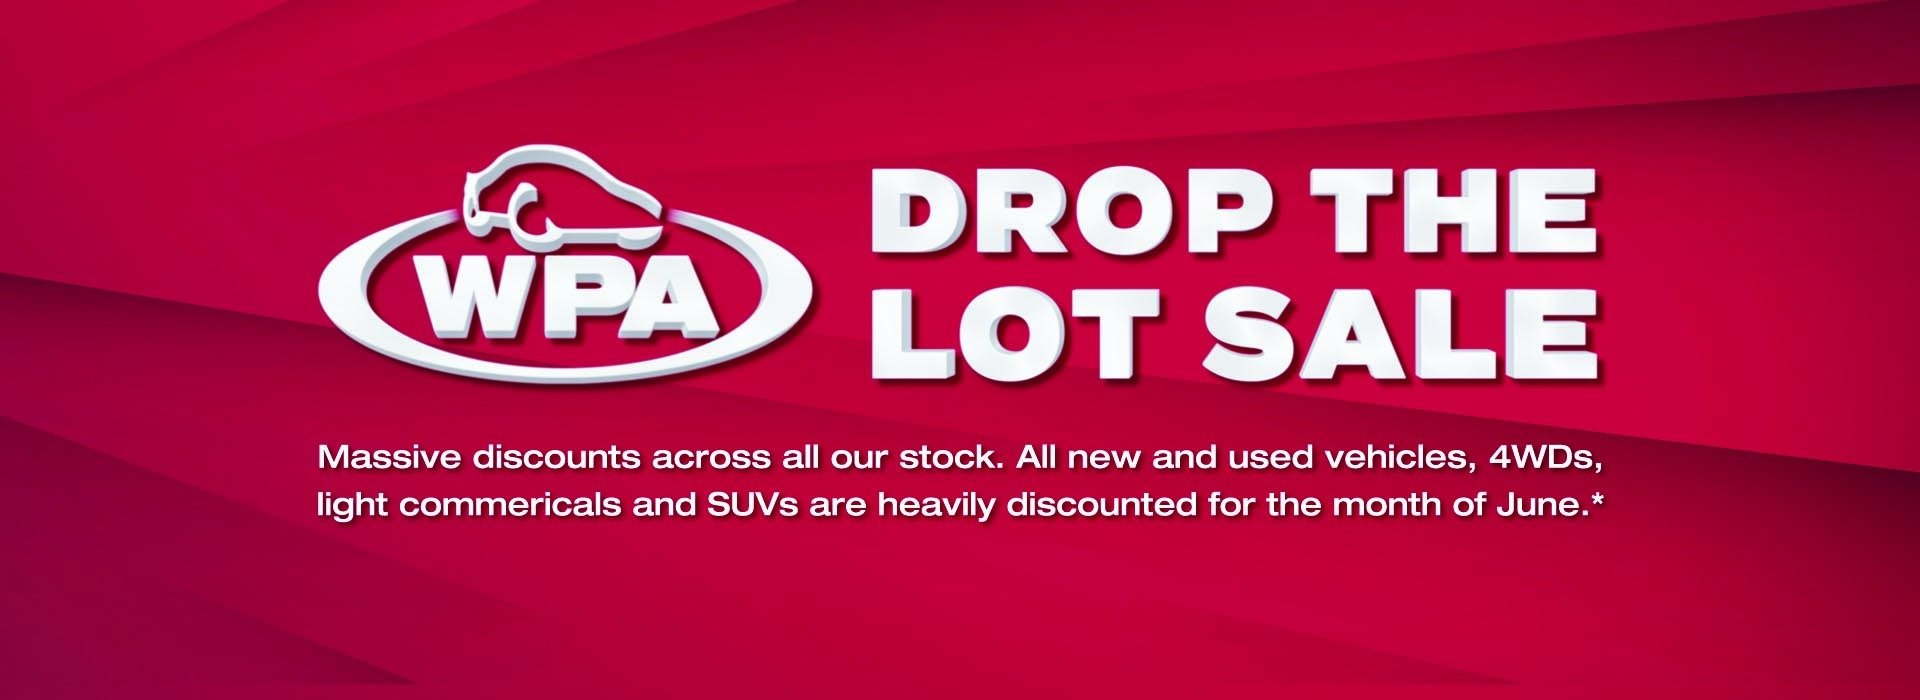 Western Plains Mitsubishi | Drop The Lot Sale Banner